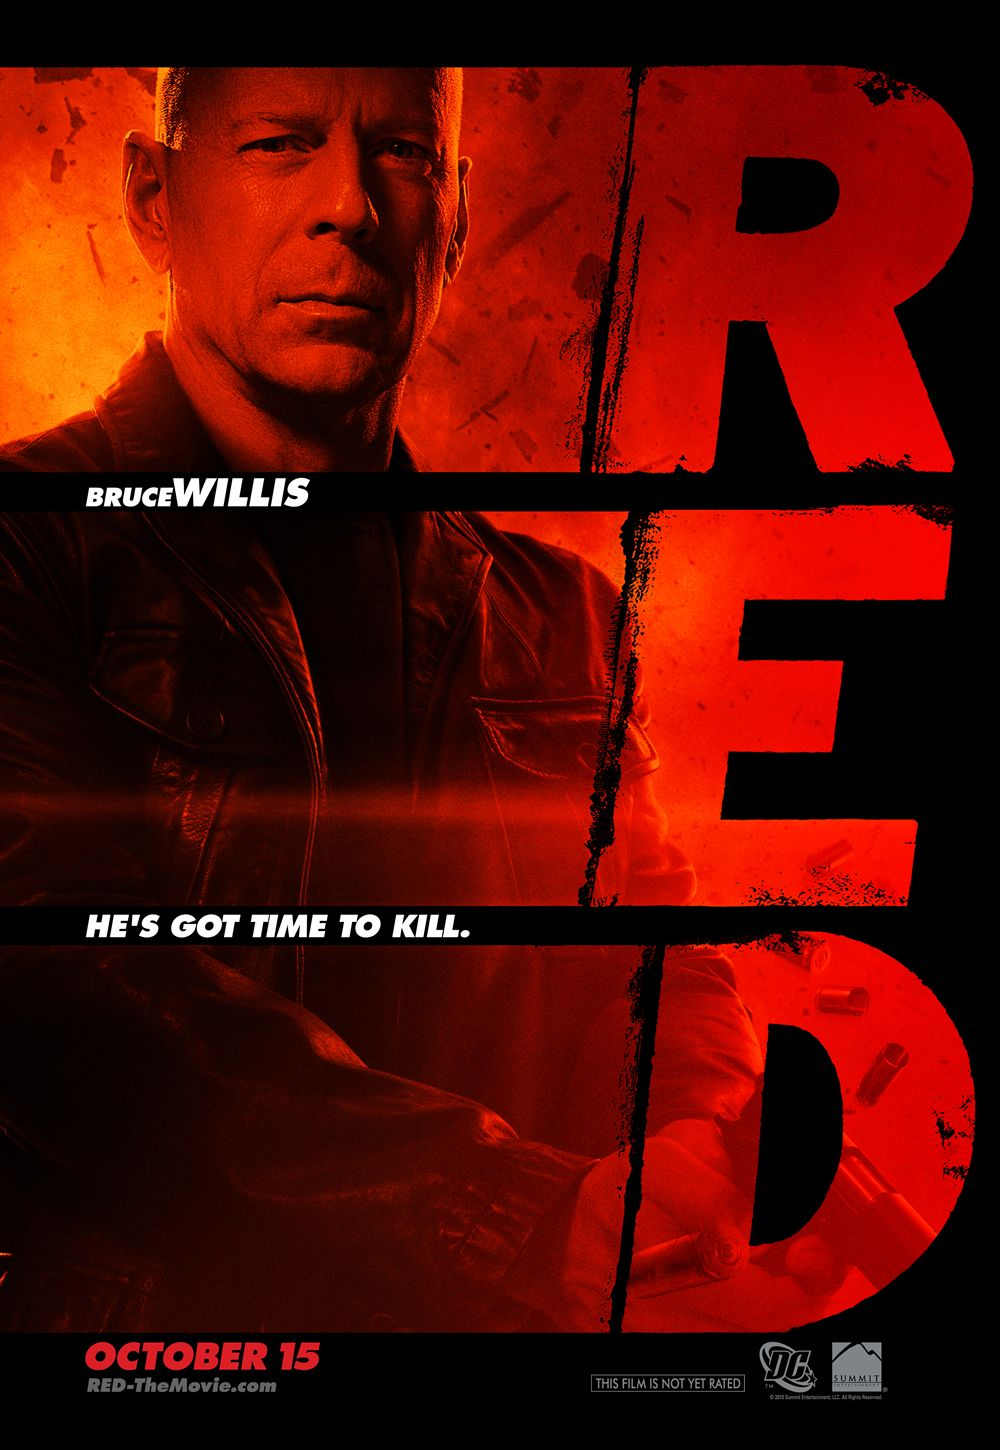 the blot says red character movie poster set red one sheet character movie posters bruce willis as frank moses